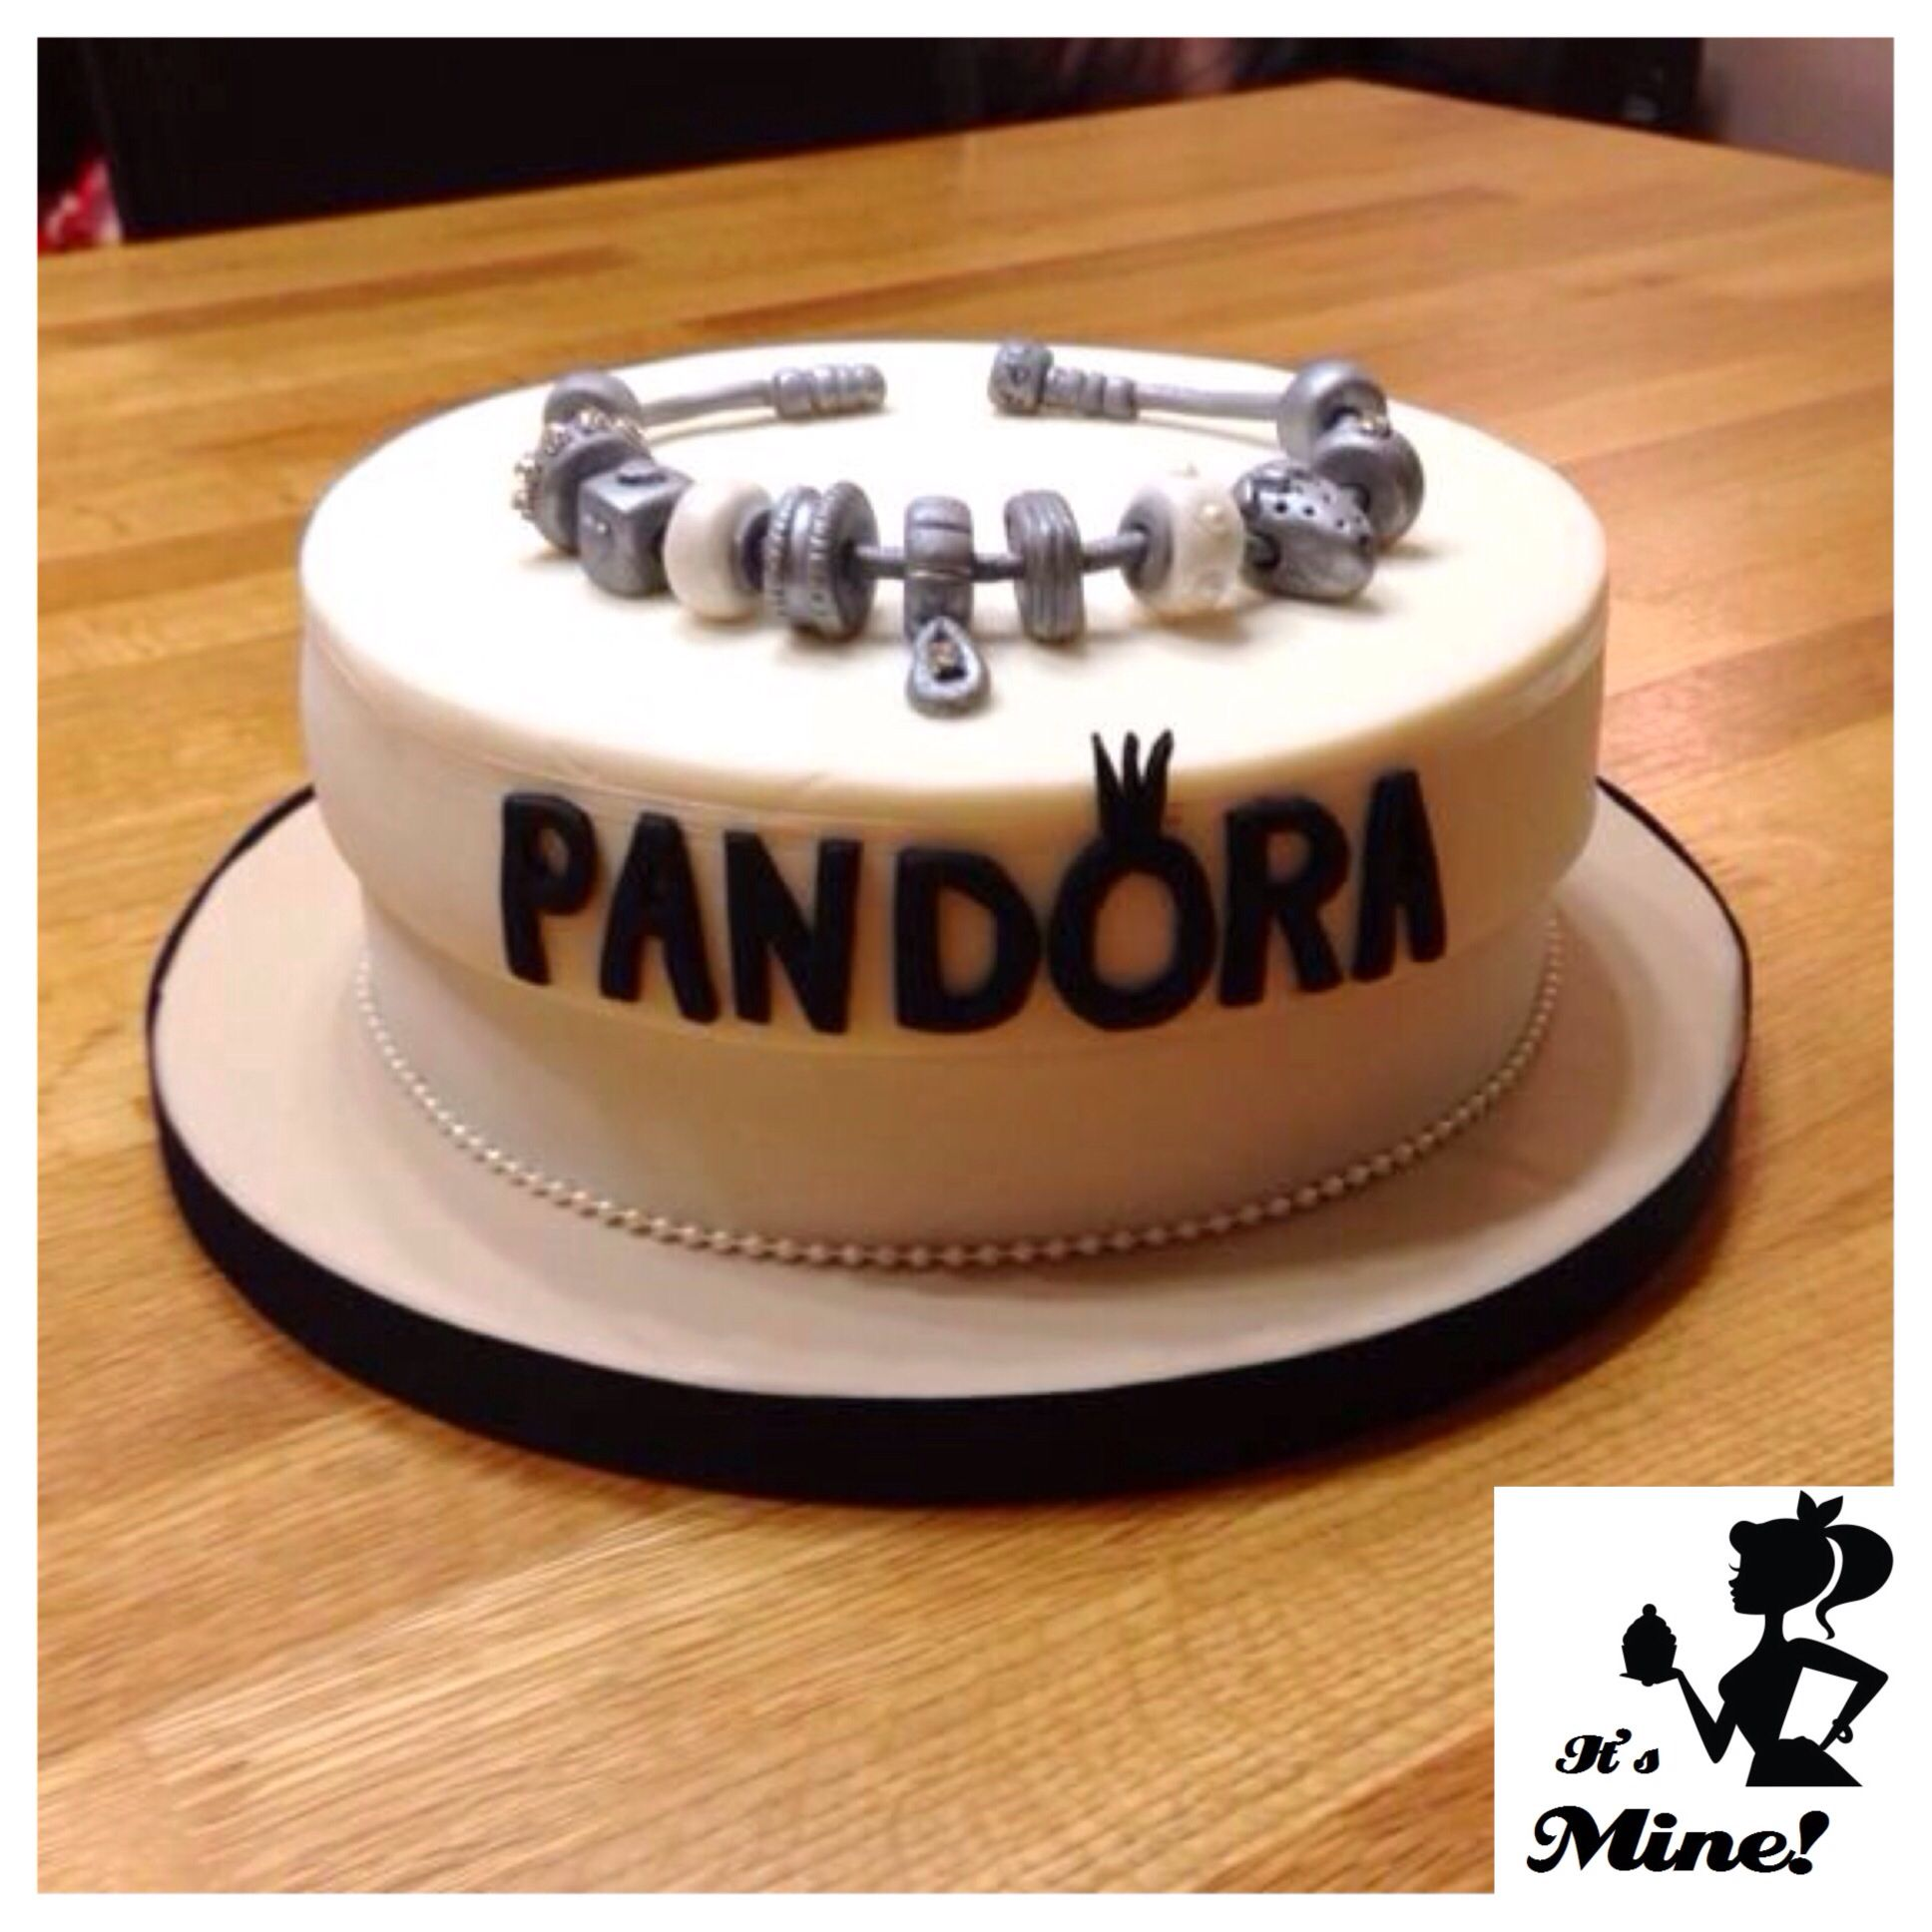 Admirable Pandora Charm Bracelet Cake Not A Gwp But Really Cool With Birthday Cards Printable Opercafe Filternl